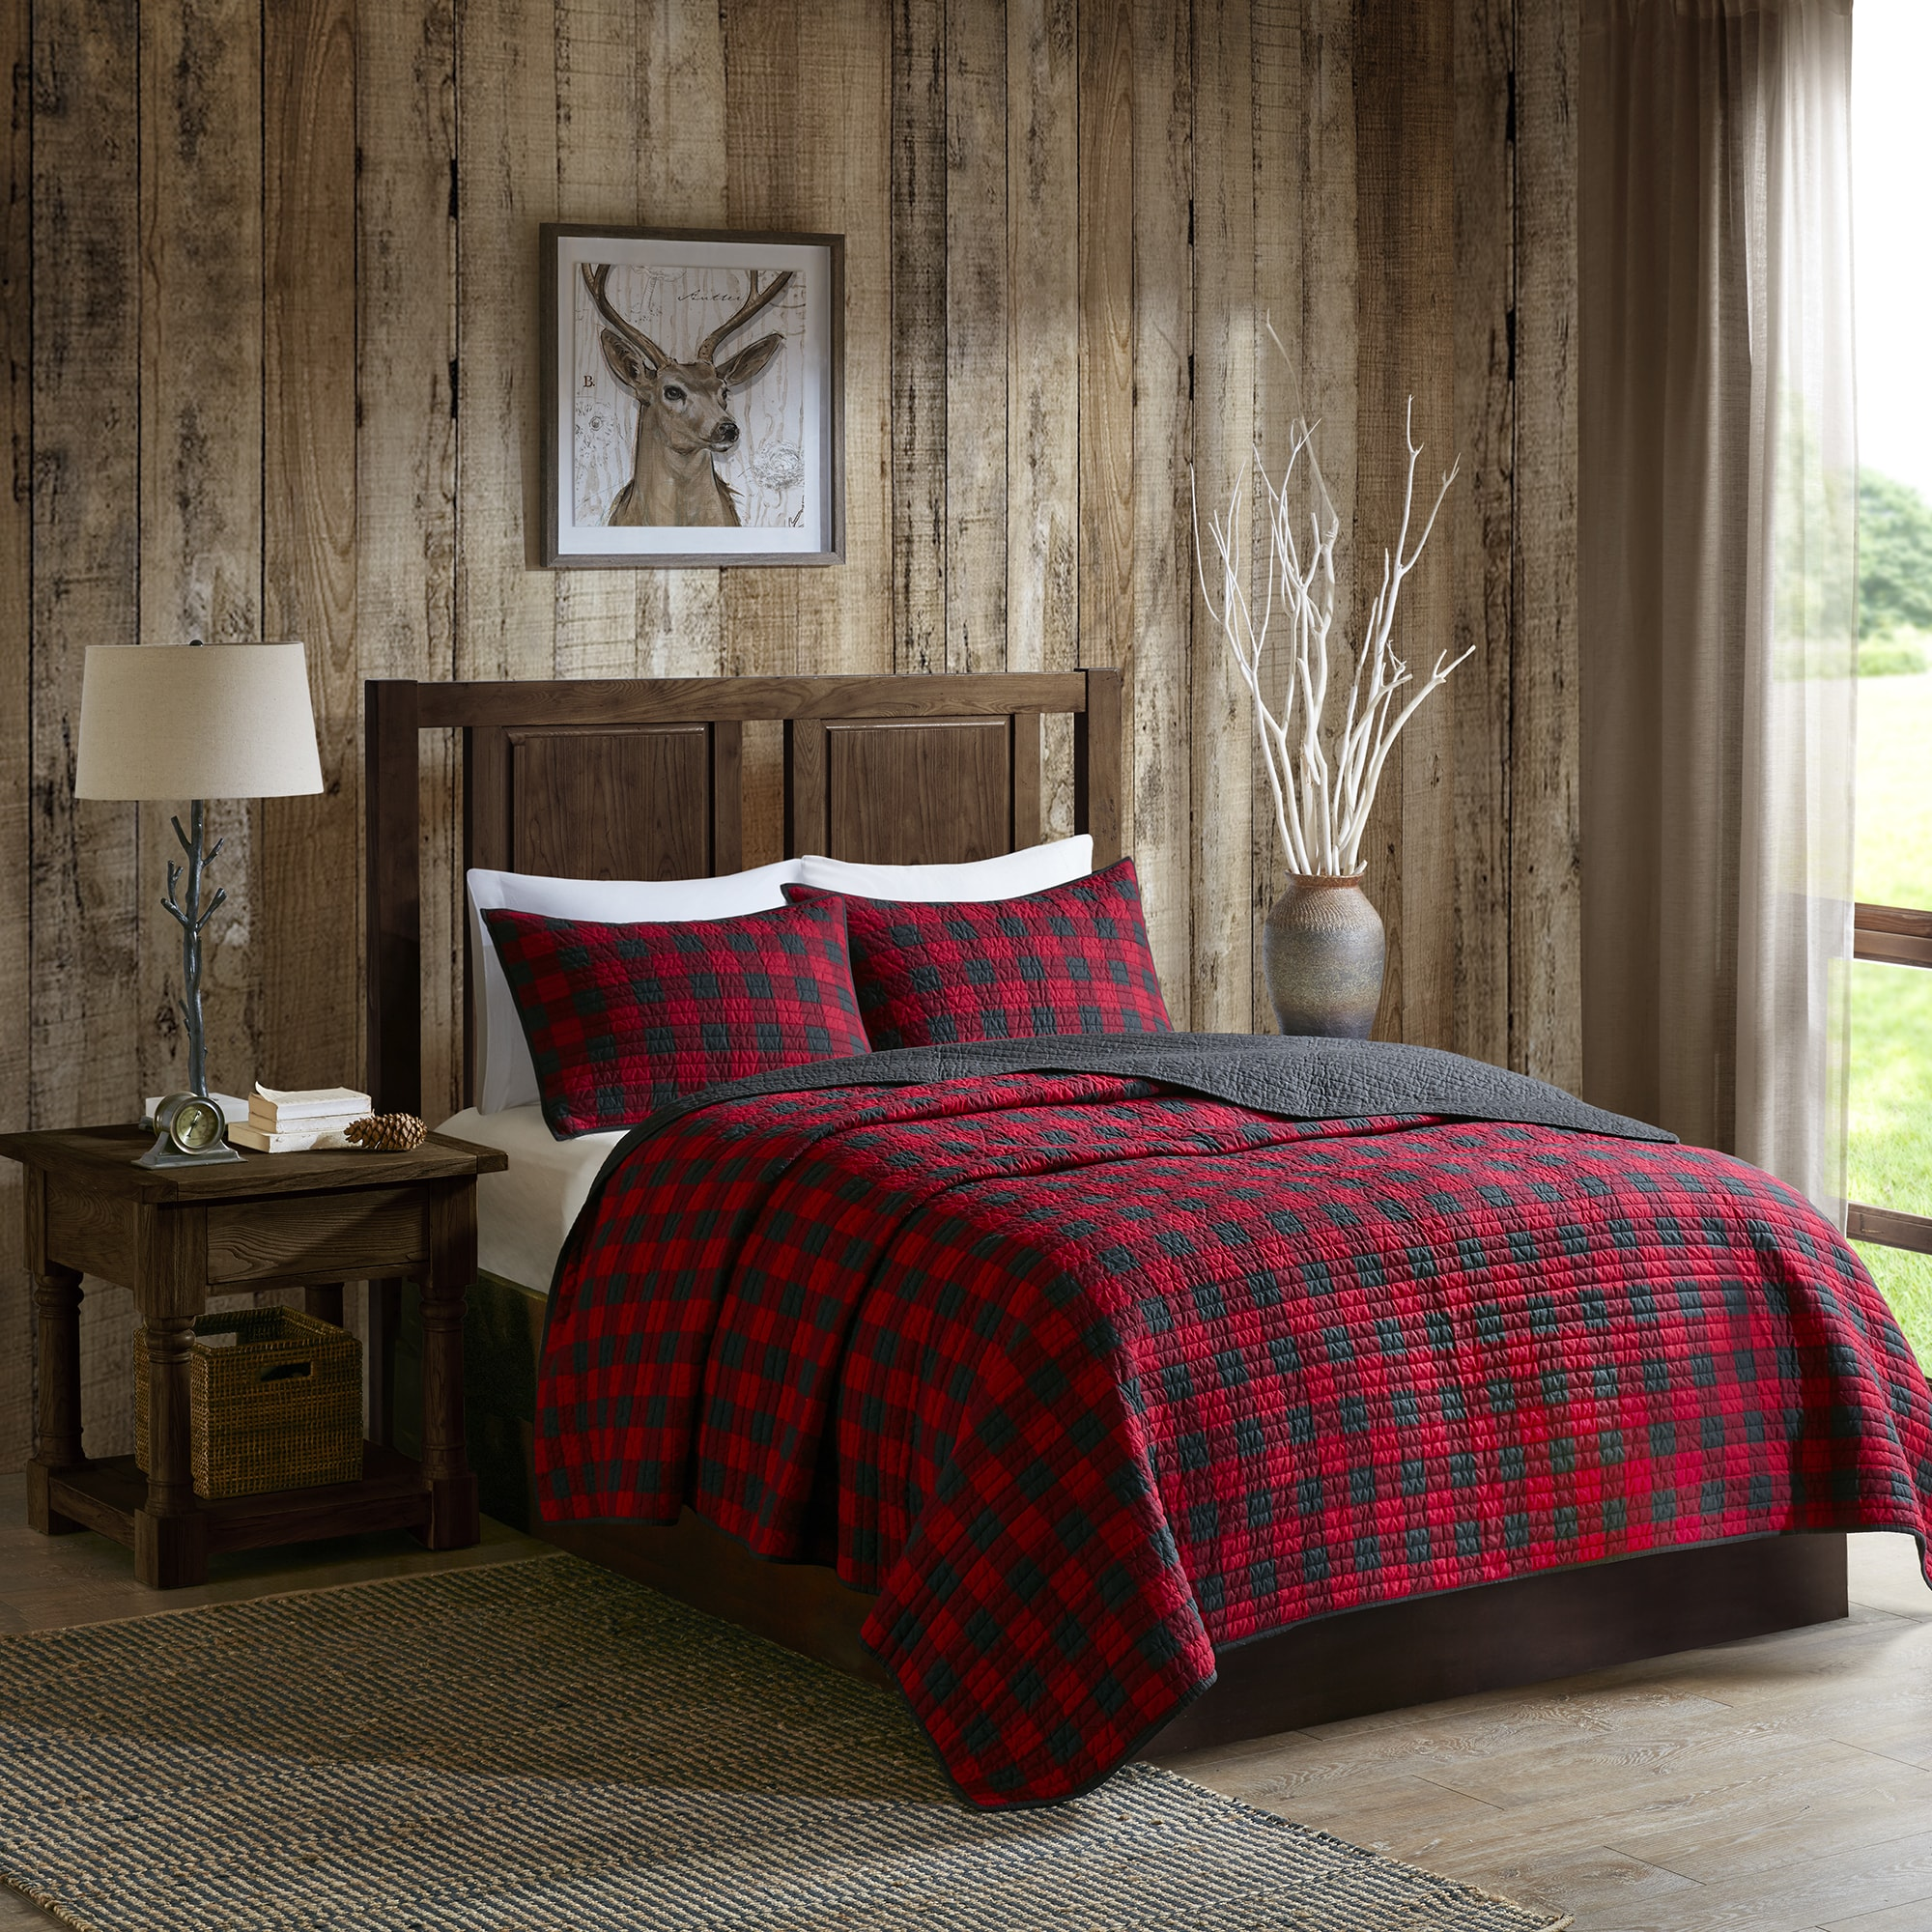 Woolrich Check Red Cotton Percale Printed Quilt Mini Set - Free ... : red cotton quilt - Adamdwight.com